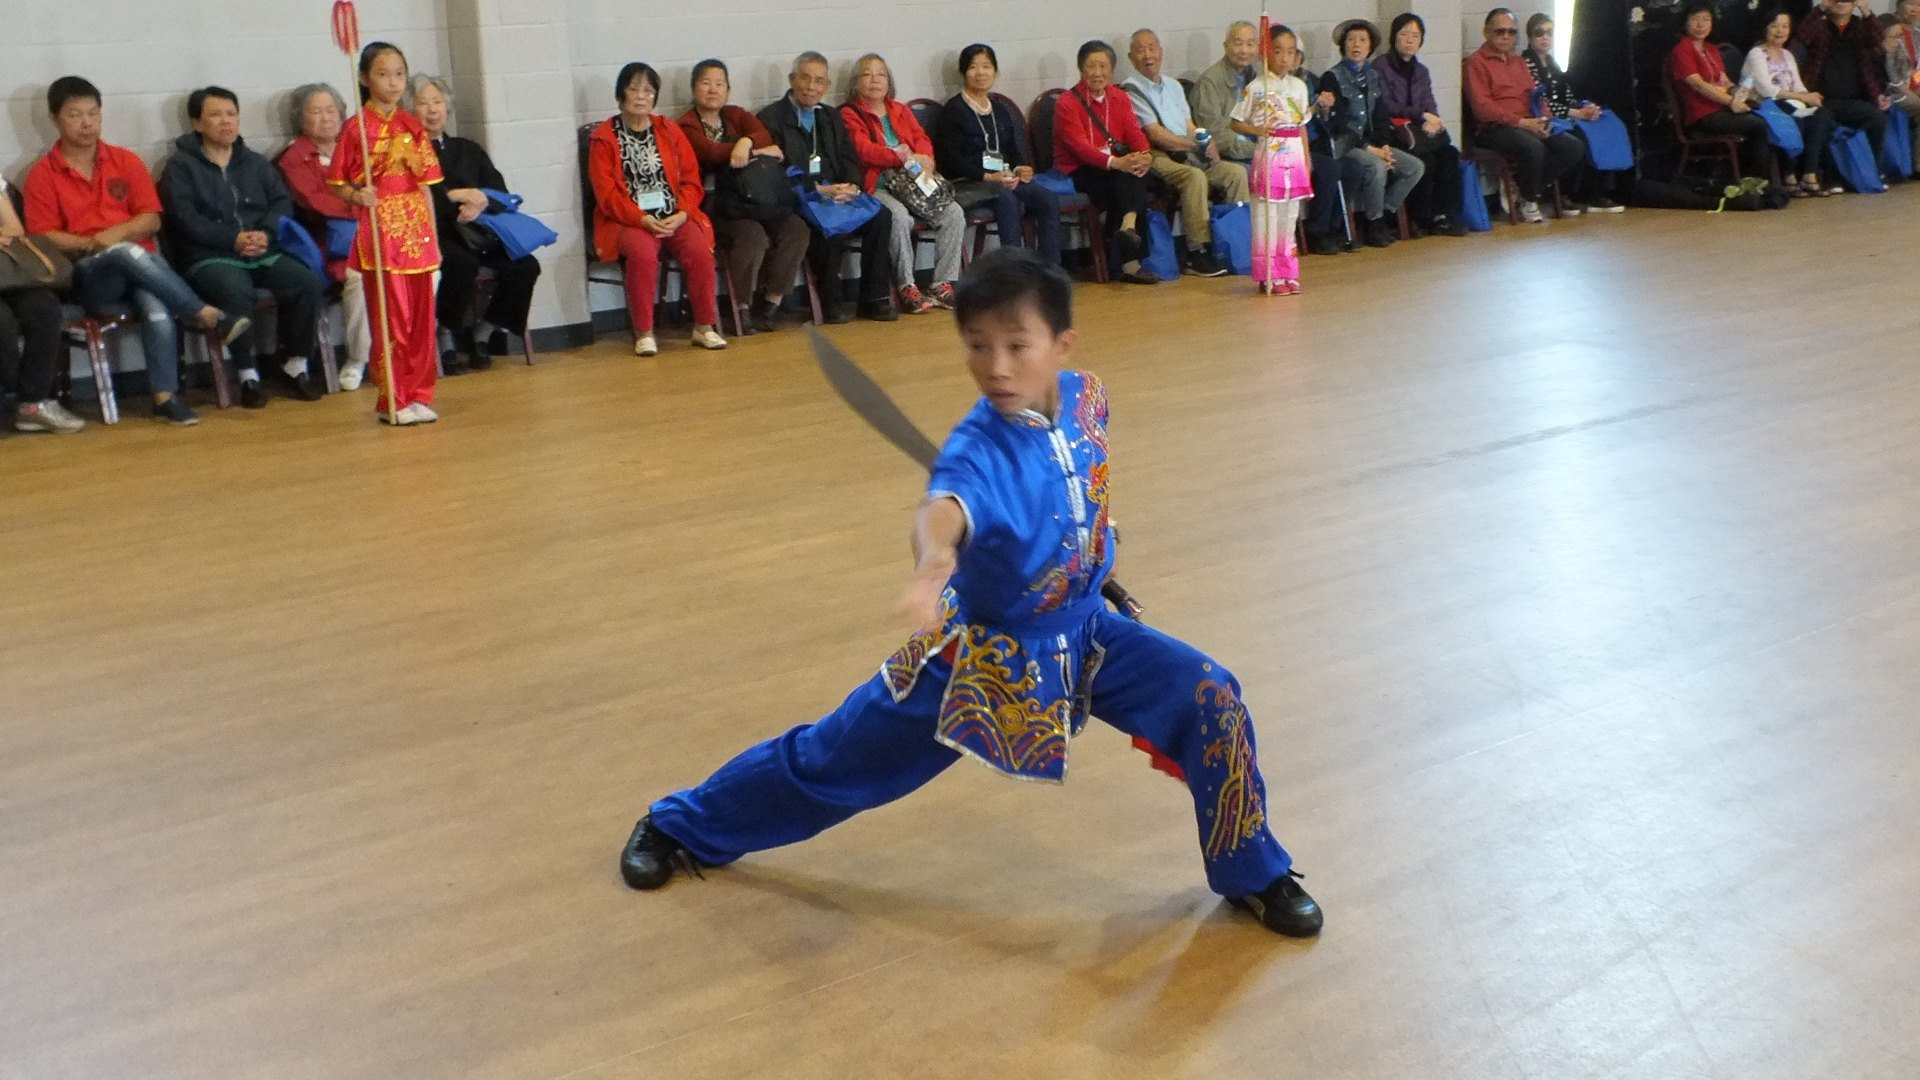 wayland-li-wushu-toronto-canada-demo-chinese-cultural-centre-health-awareness-day-2017-8.jpg